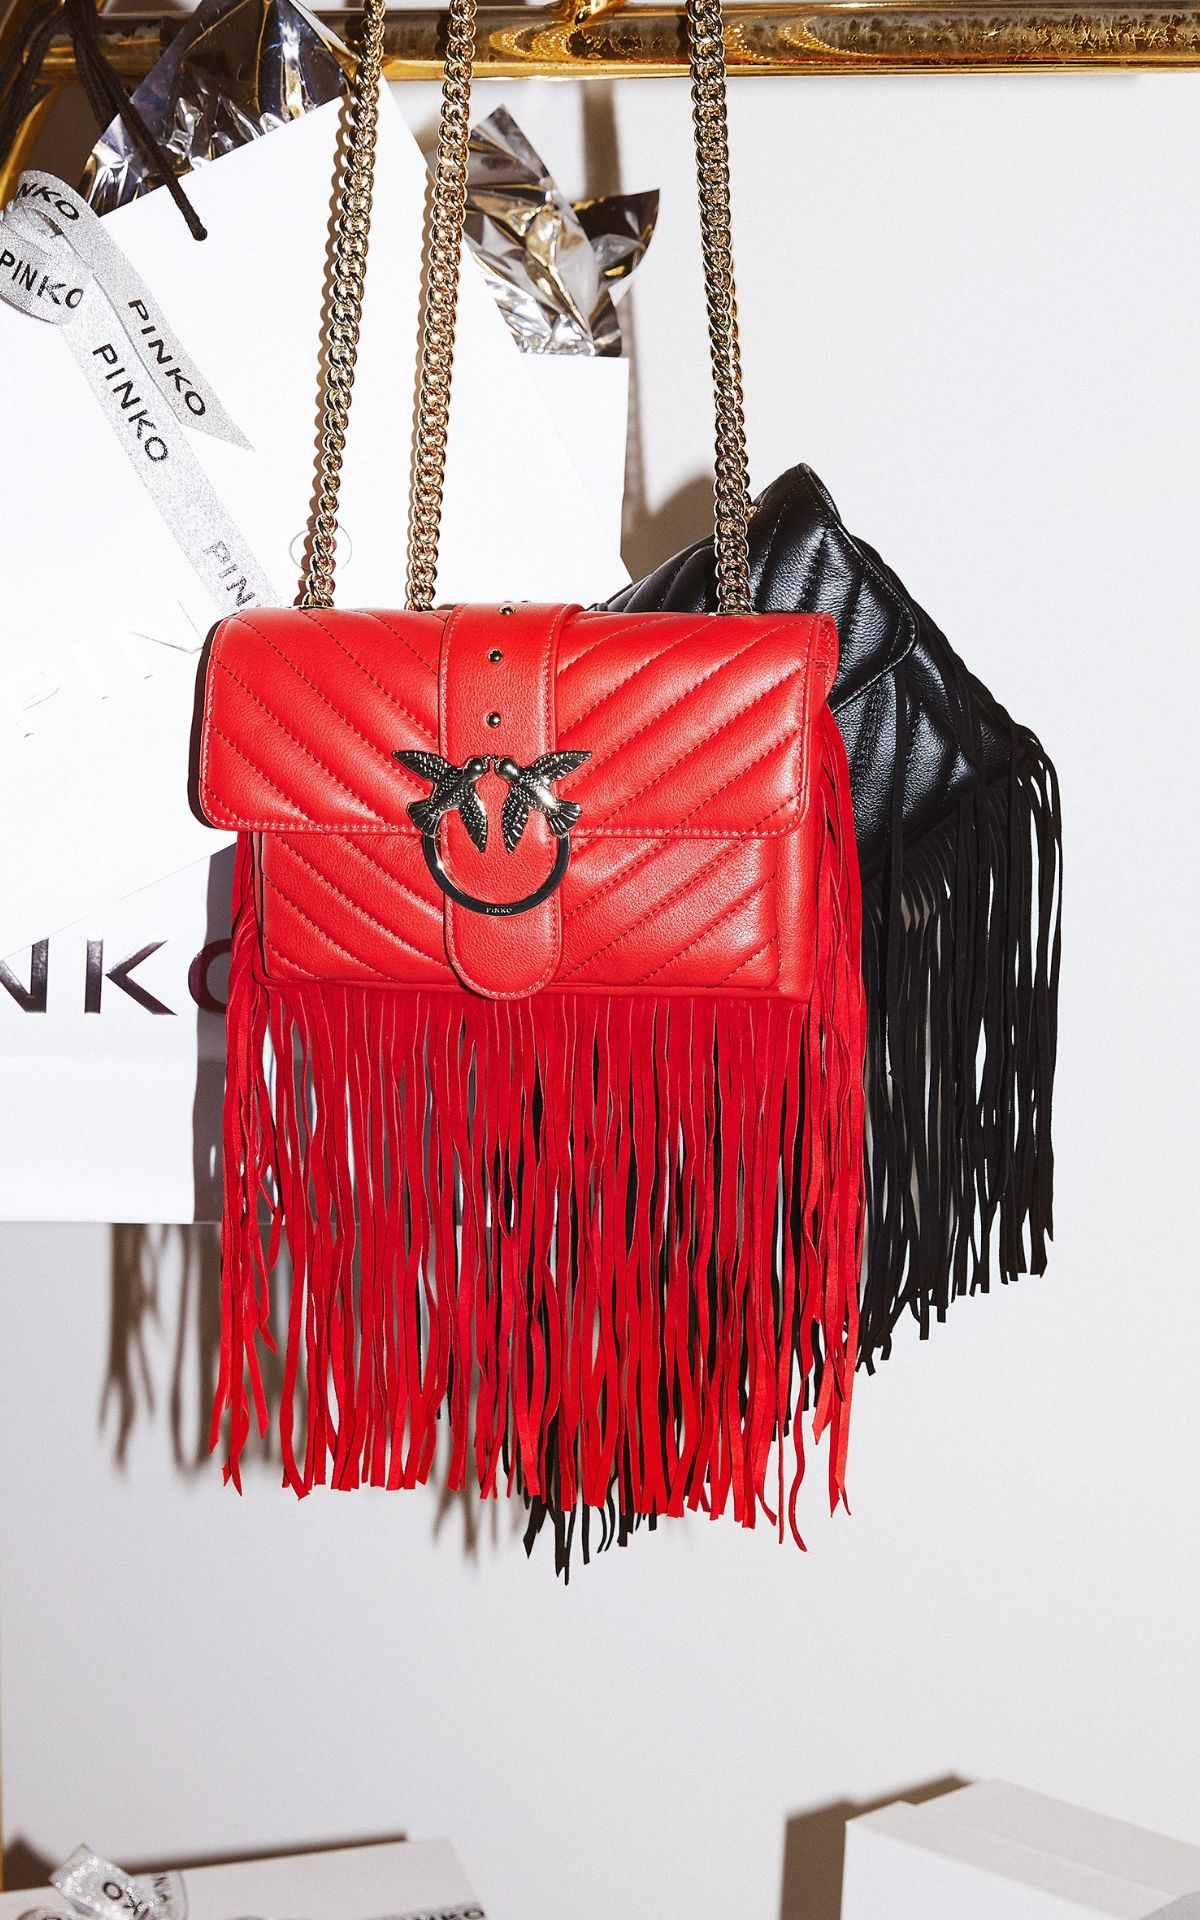 Red and black bags from Pinko's LOVE collection